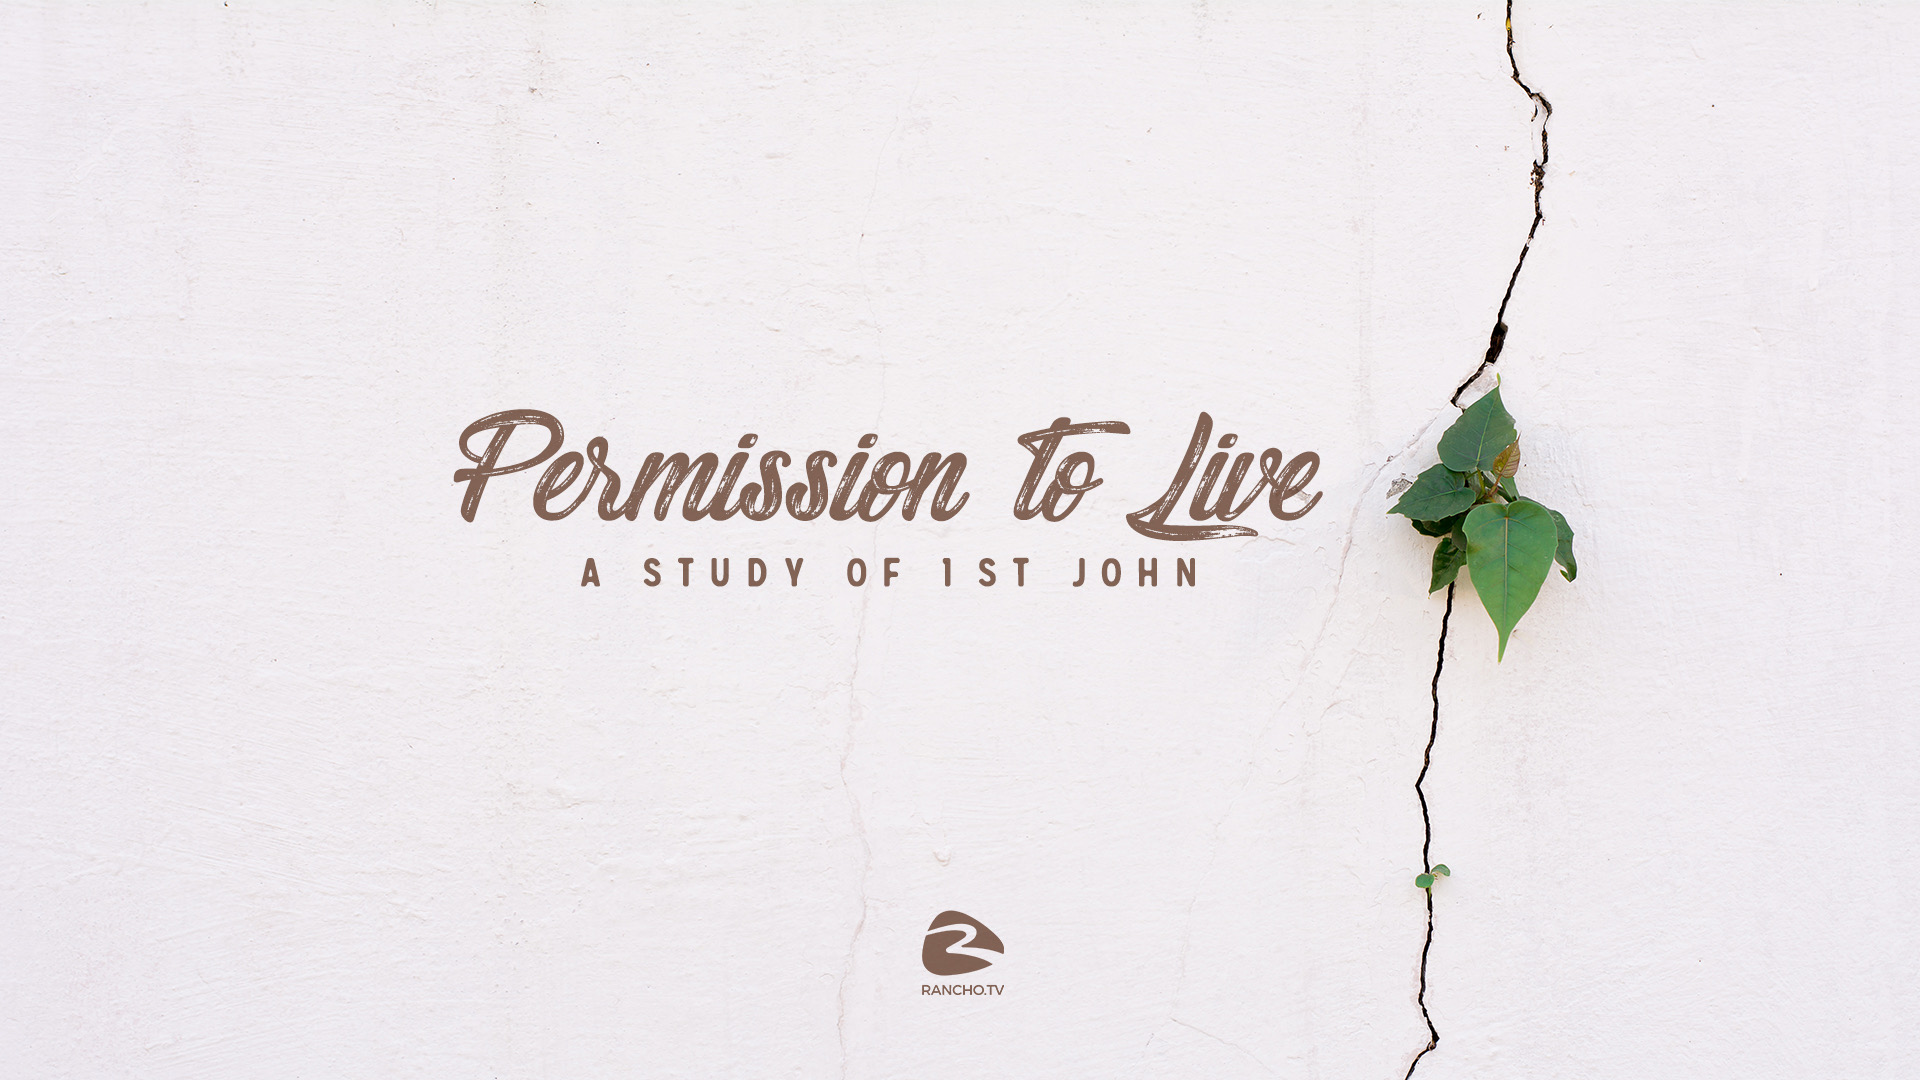 Permission To Live